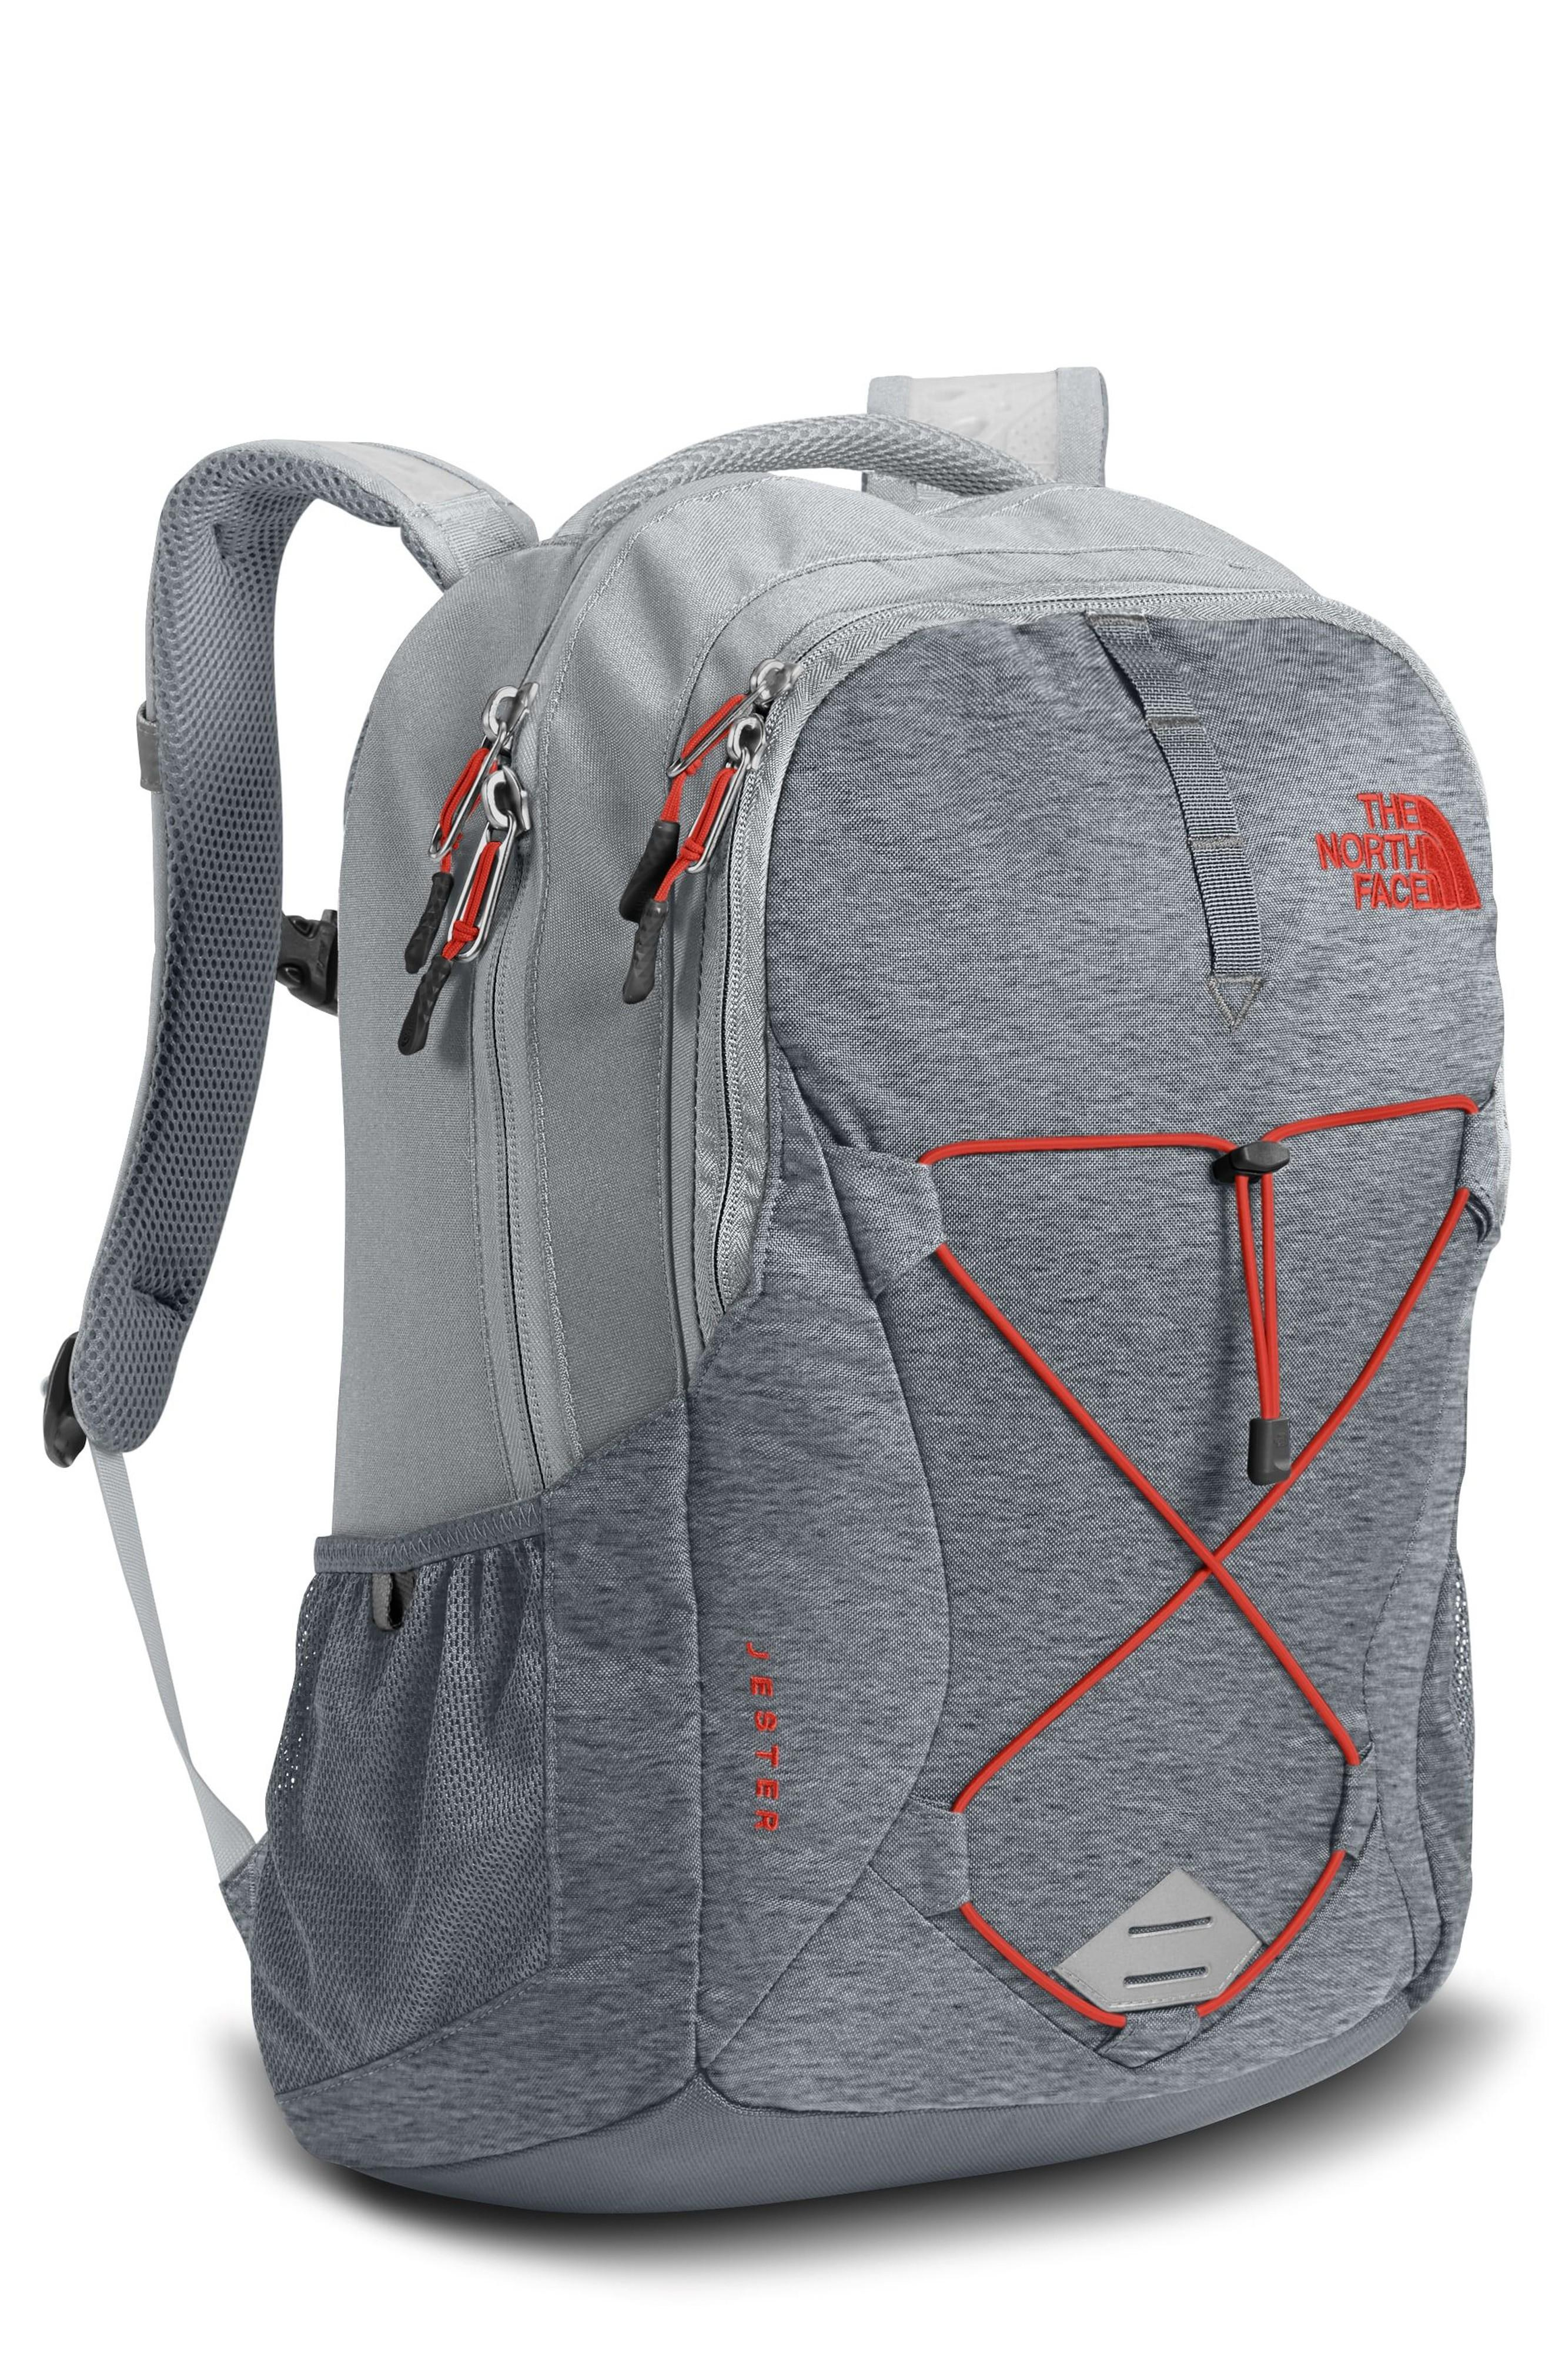 42d1845b8 Jester Backpack - Grey in Grey Dark Hther/High Rise Grey